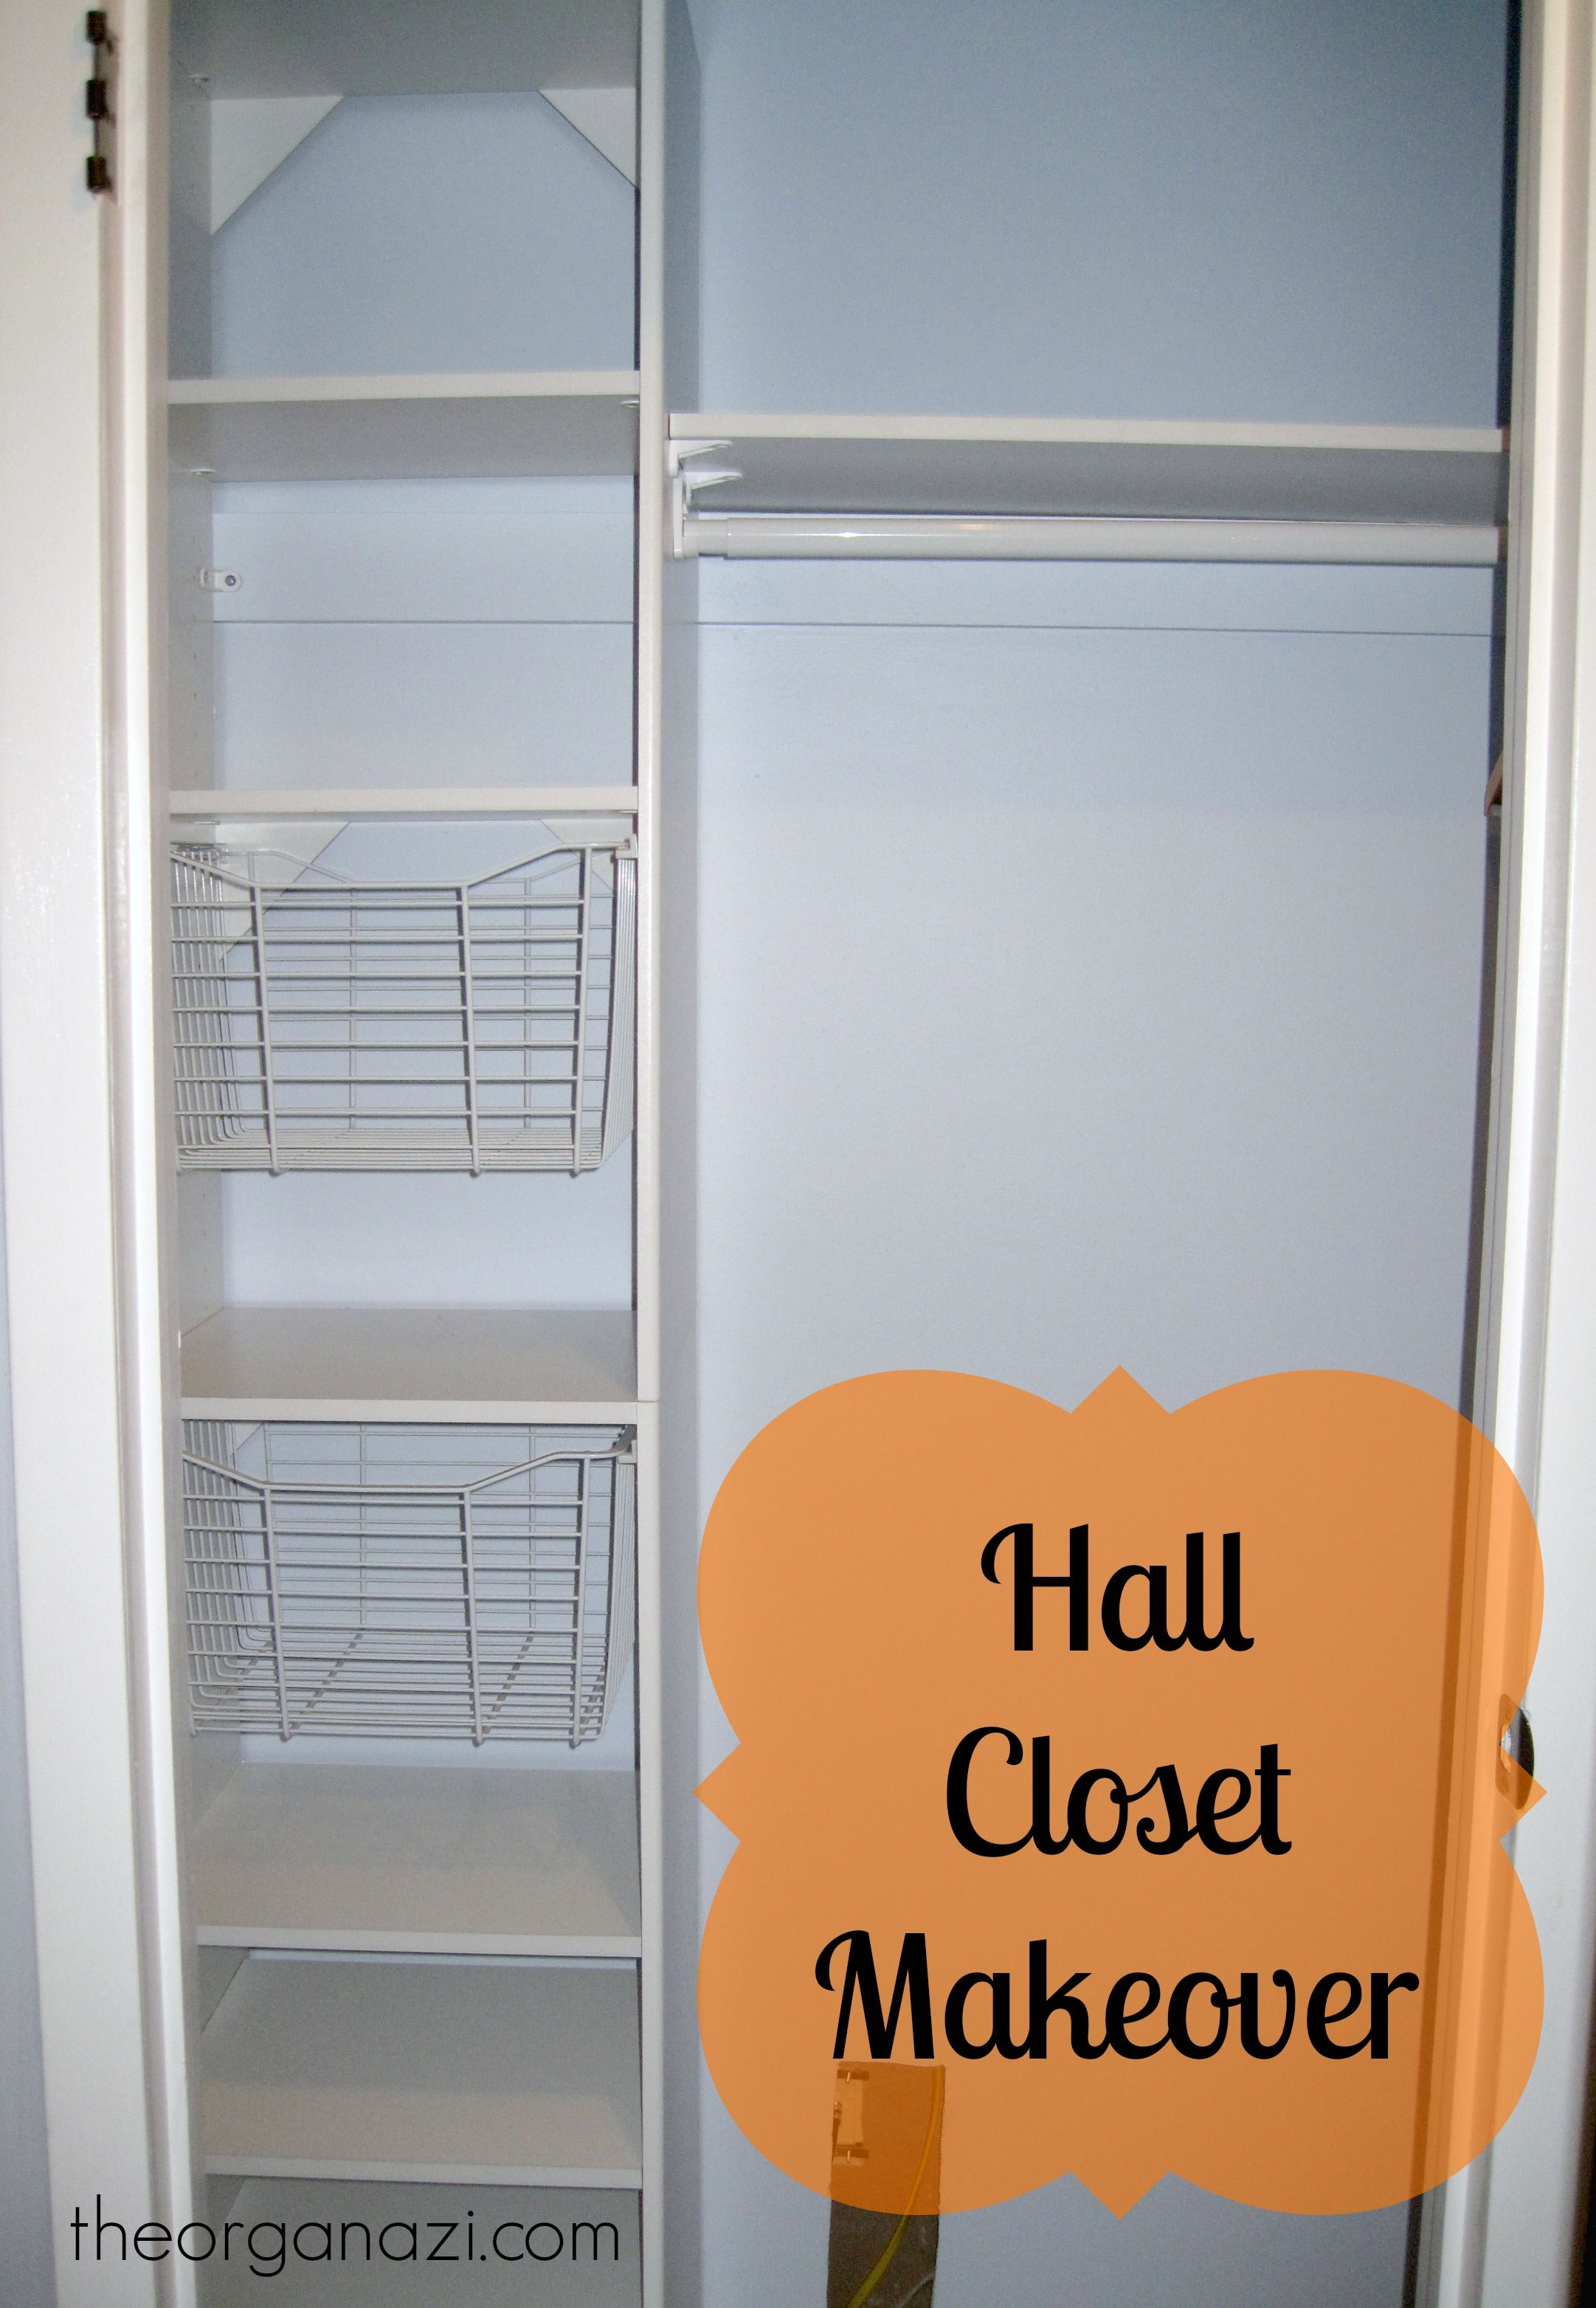 Hall Closet Organization Ideas Part - 19: My Hall Closet Makeover, Including A Fresh New Paint Job, A Closet Organizer  With Basket Shelves, Organizers On The Door, And Reorganization Of Contents.